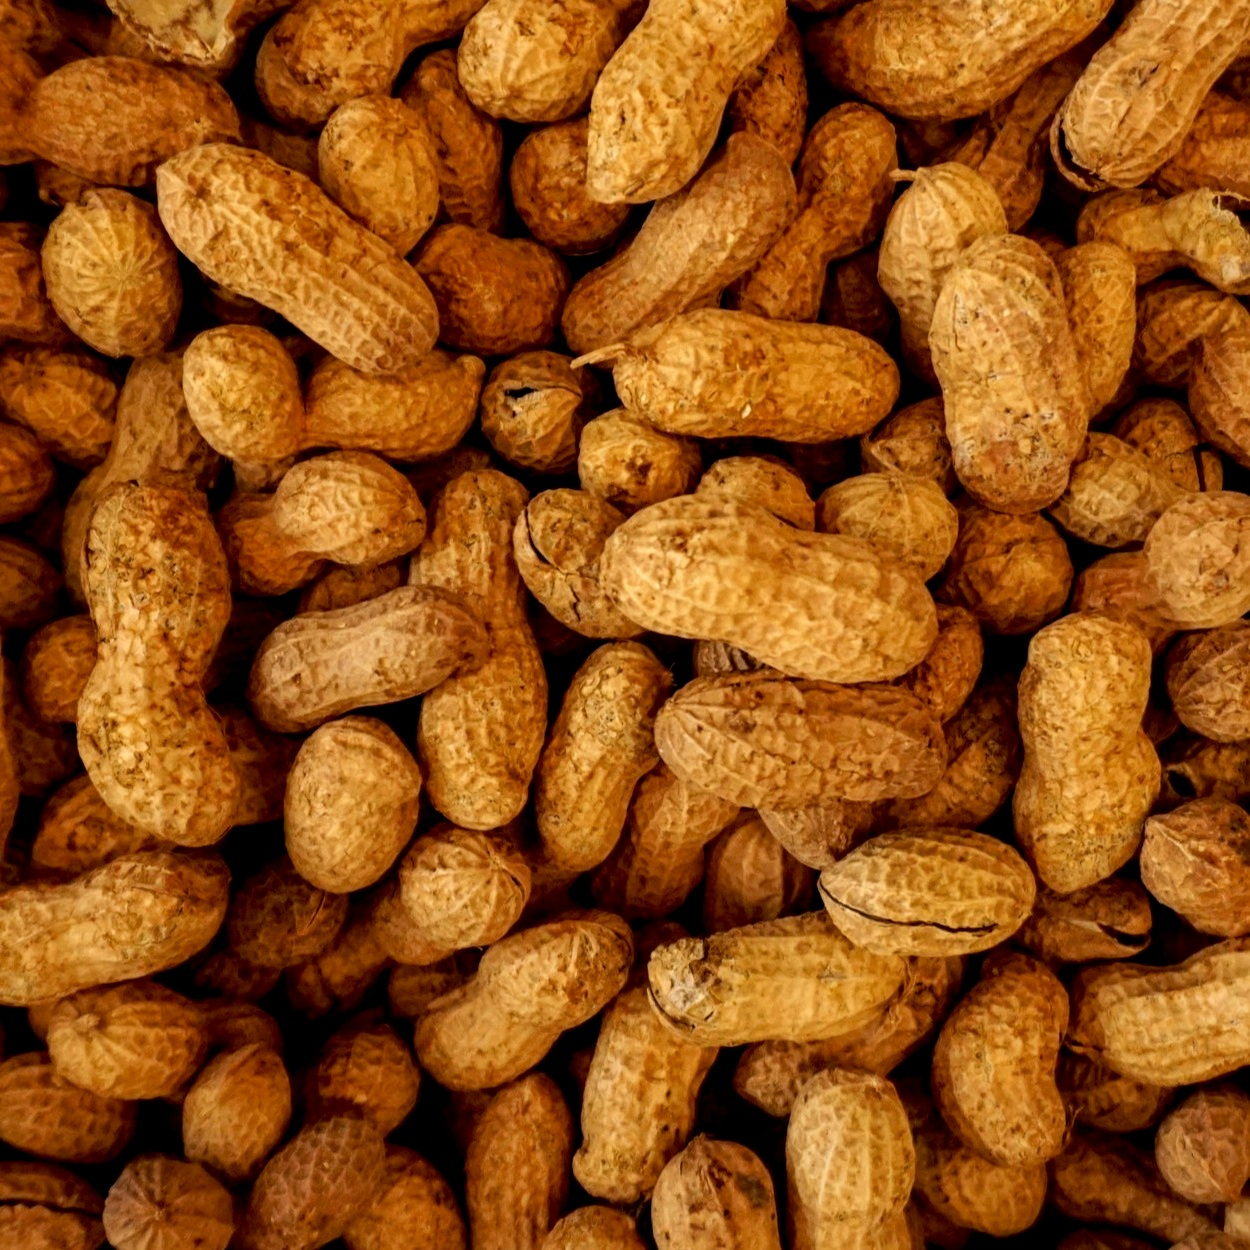 Practically Pure Peanut Butter - The peanut butter we use is simply dry roasted peanuts with a sprinkling of sea salt.